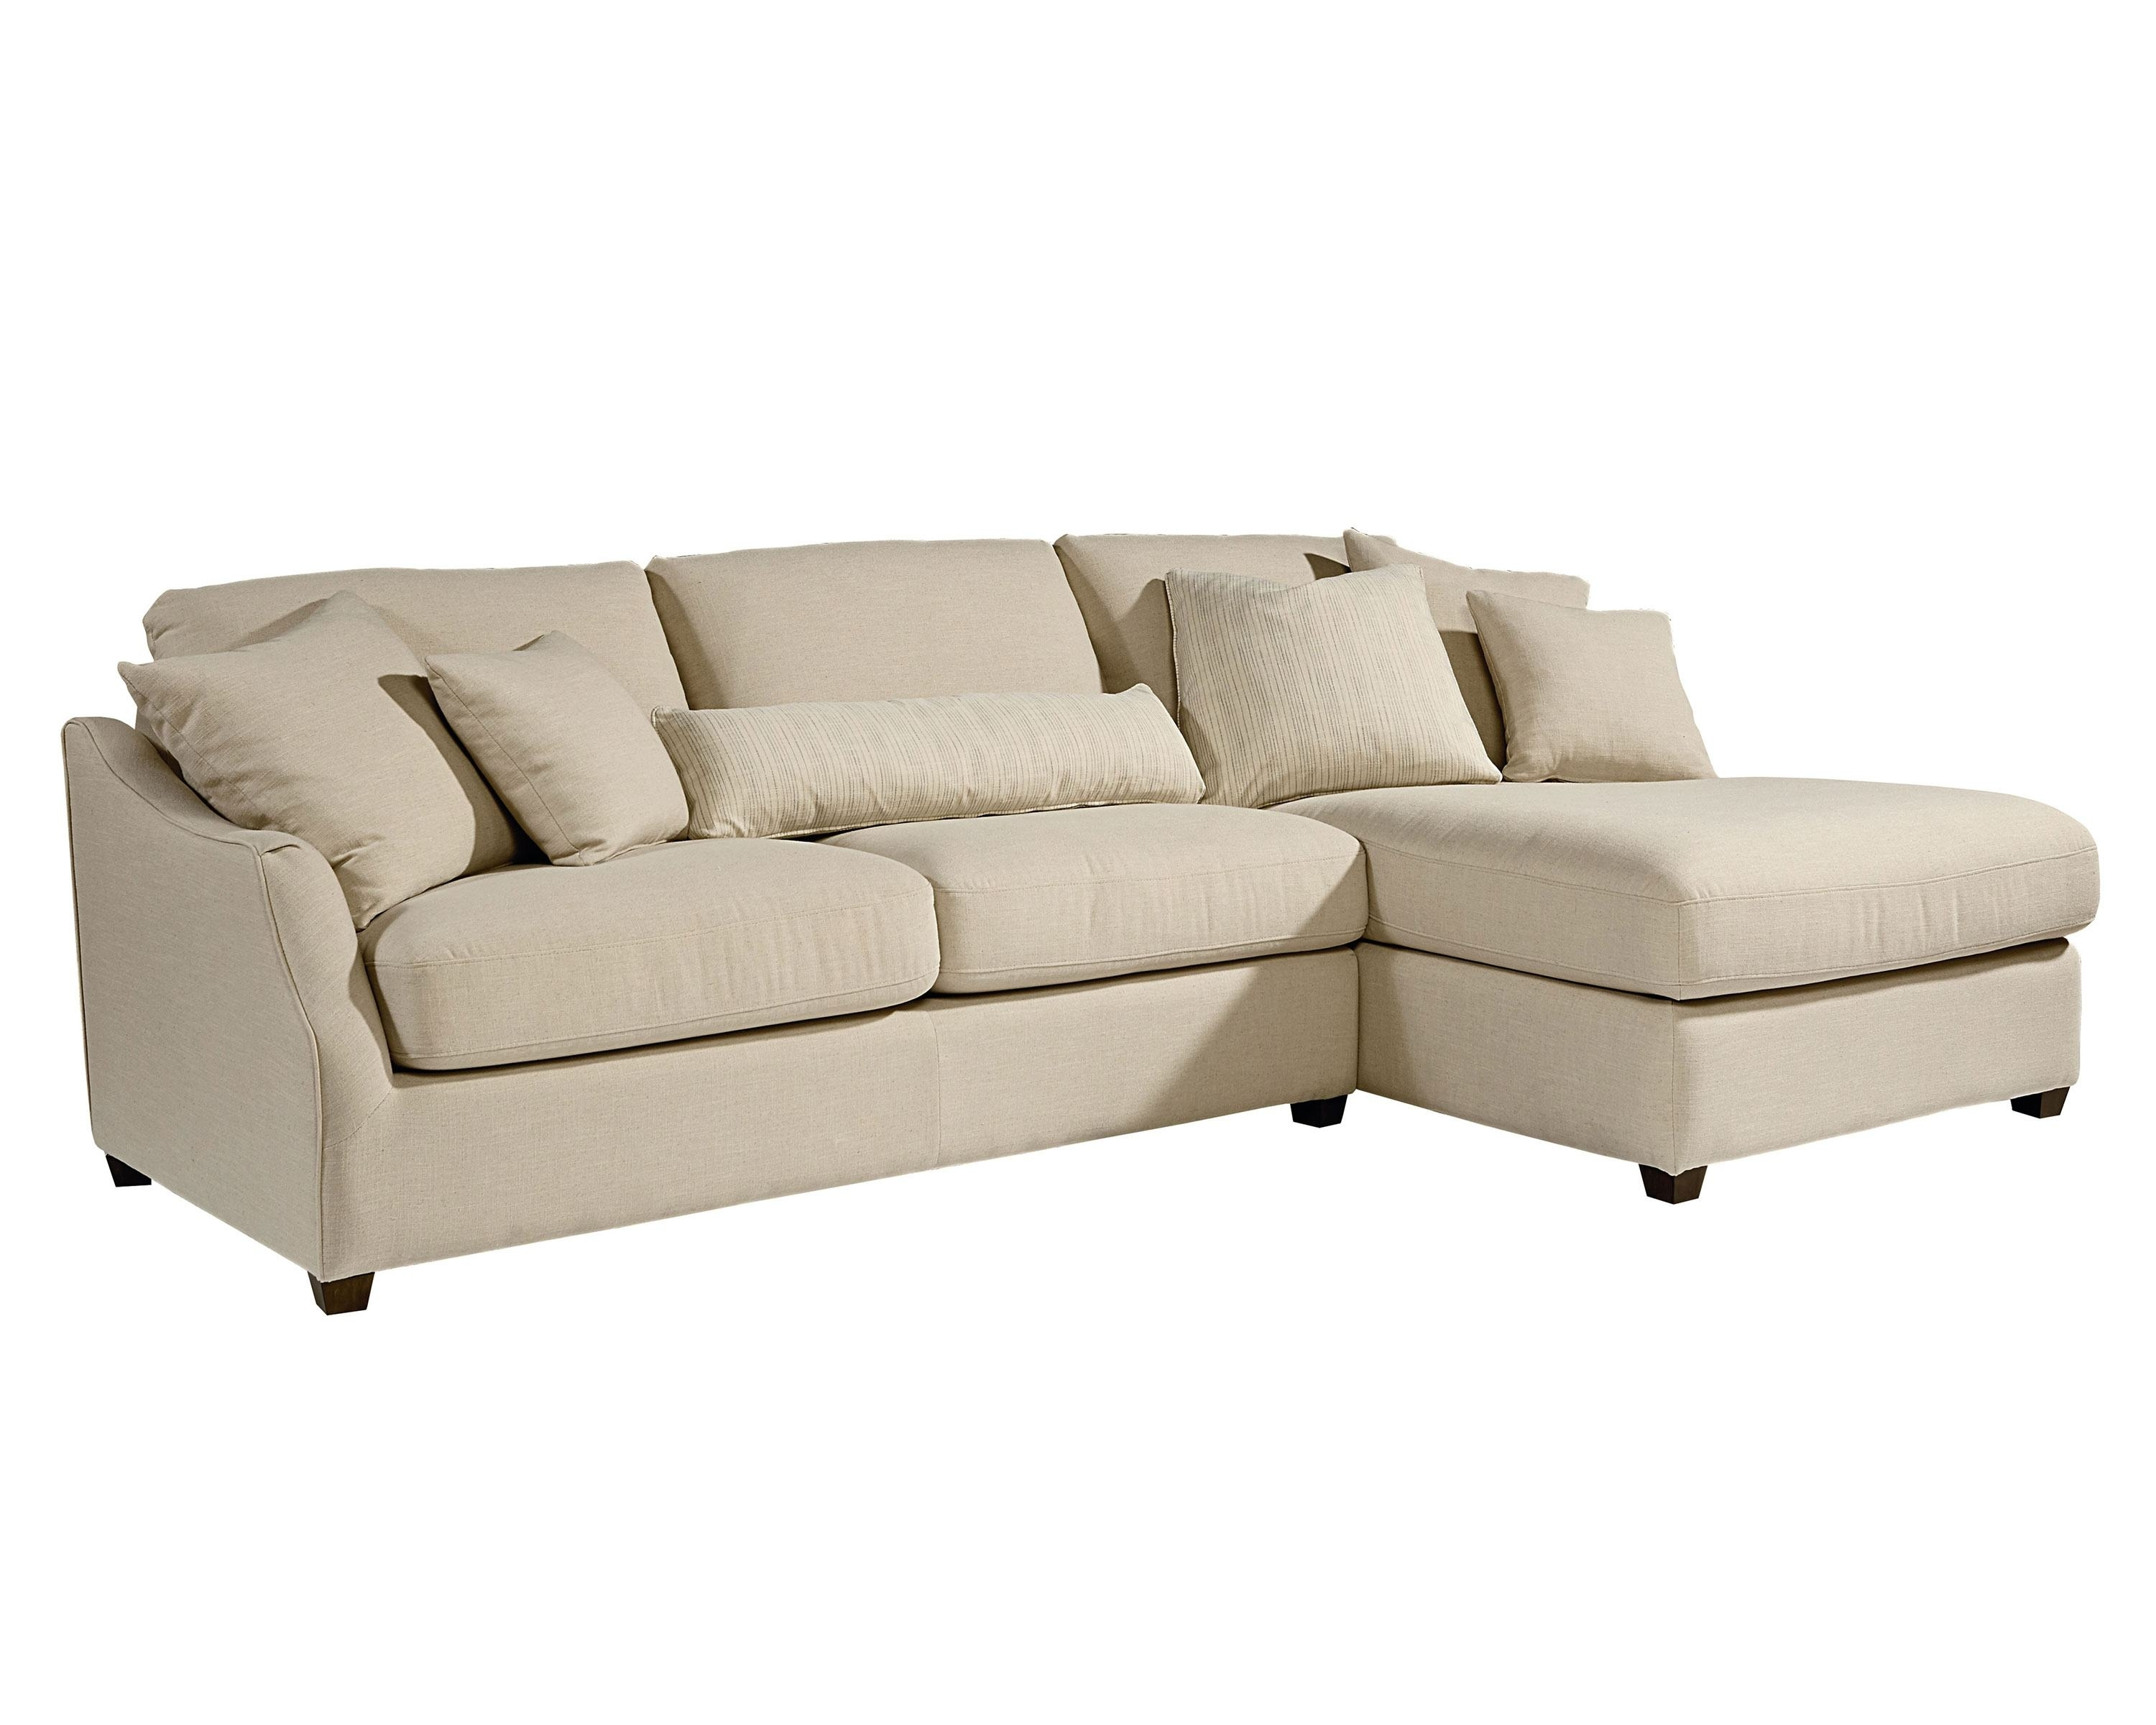 Homestead Chaise Sofa – Magnolia Home Within Magnolia Home Homestead 4 Piece Sectionals By Joanna Gaines (Image 6 of 25)